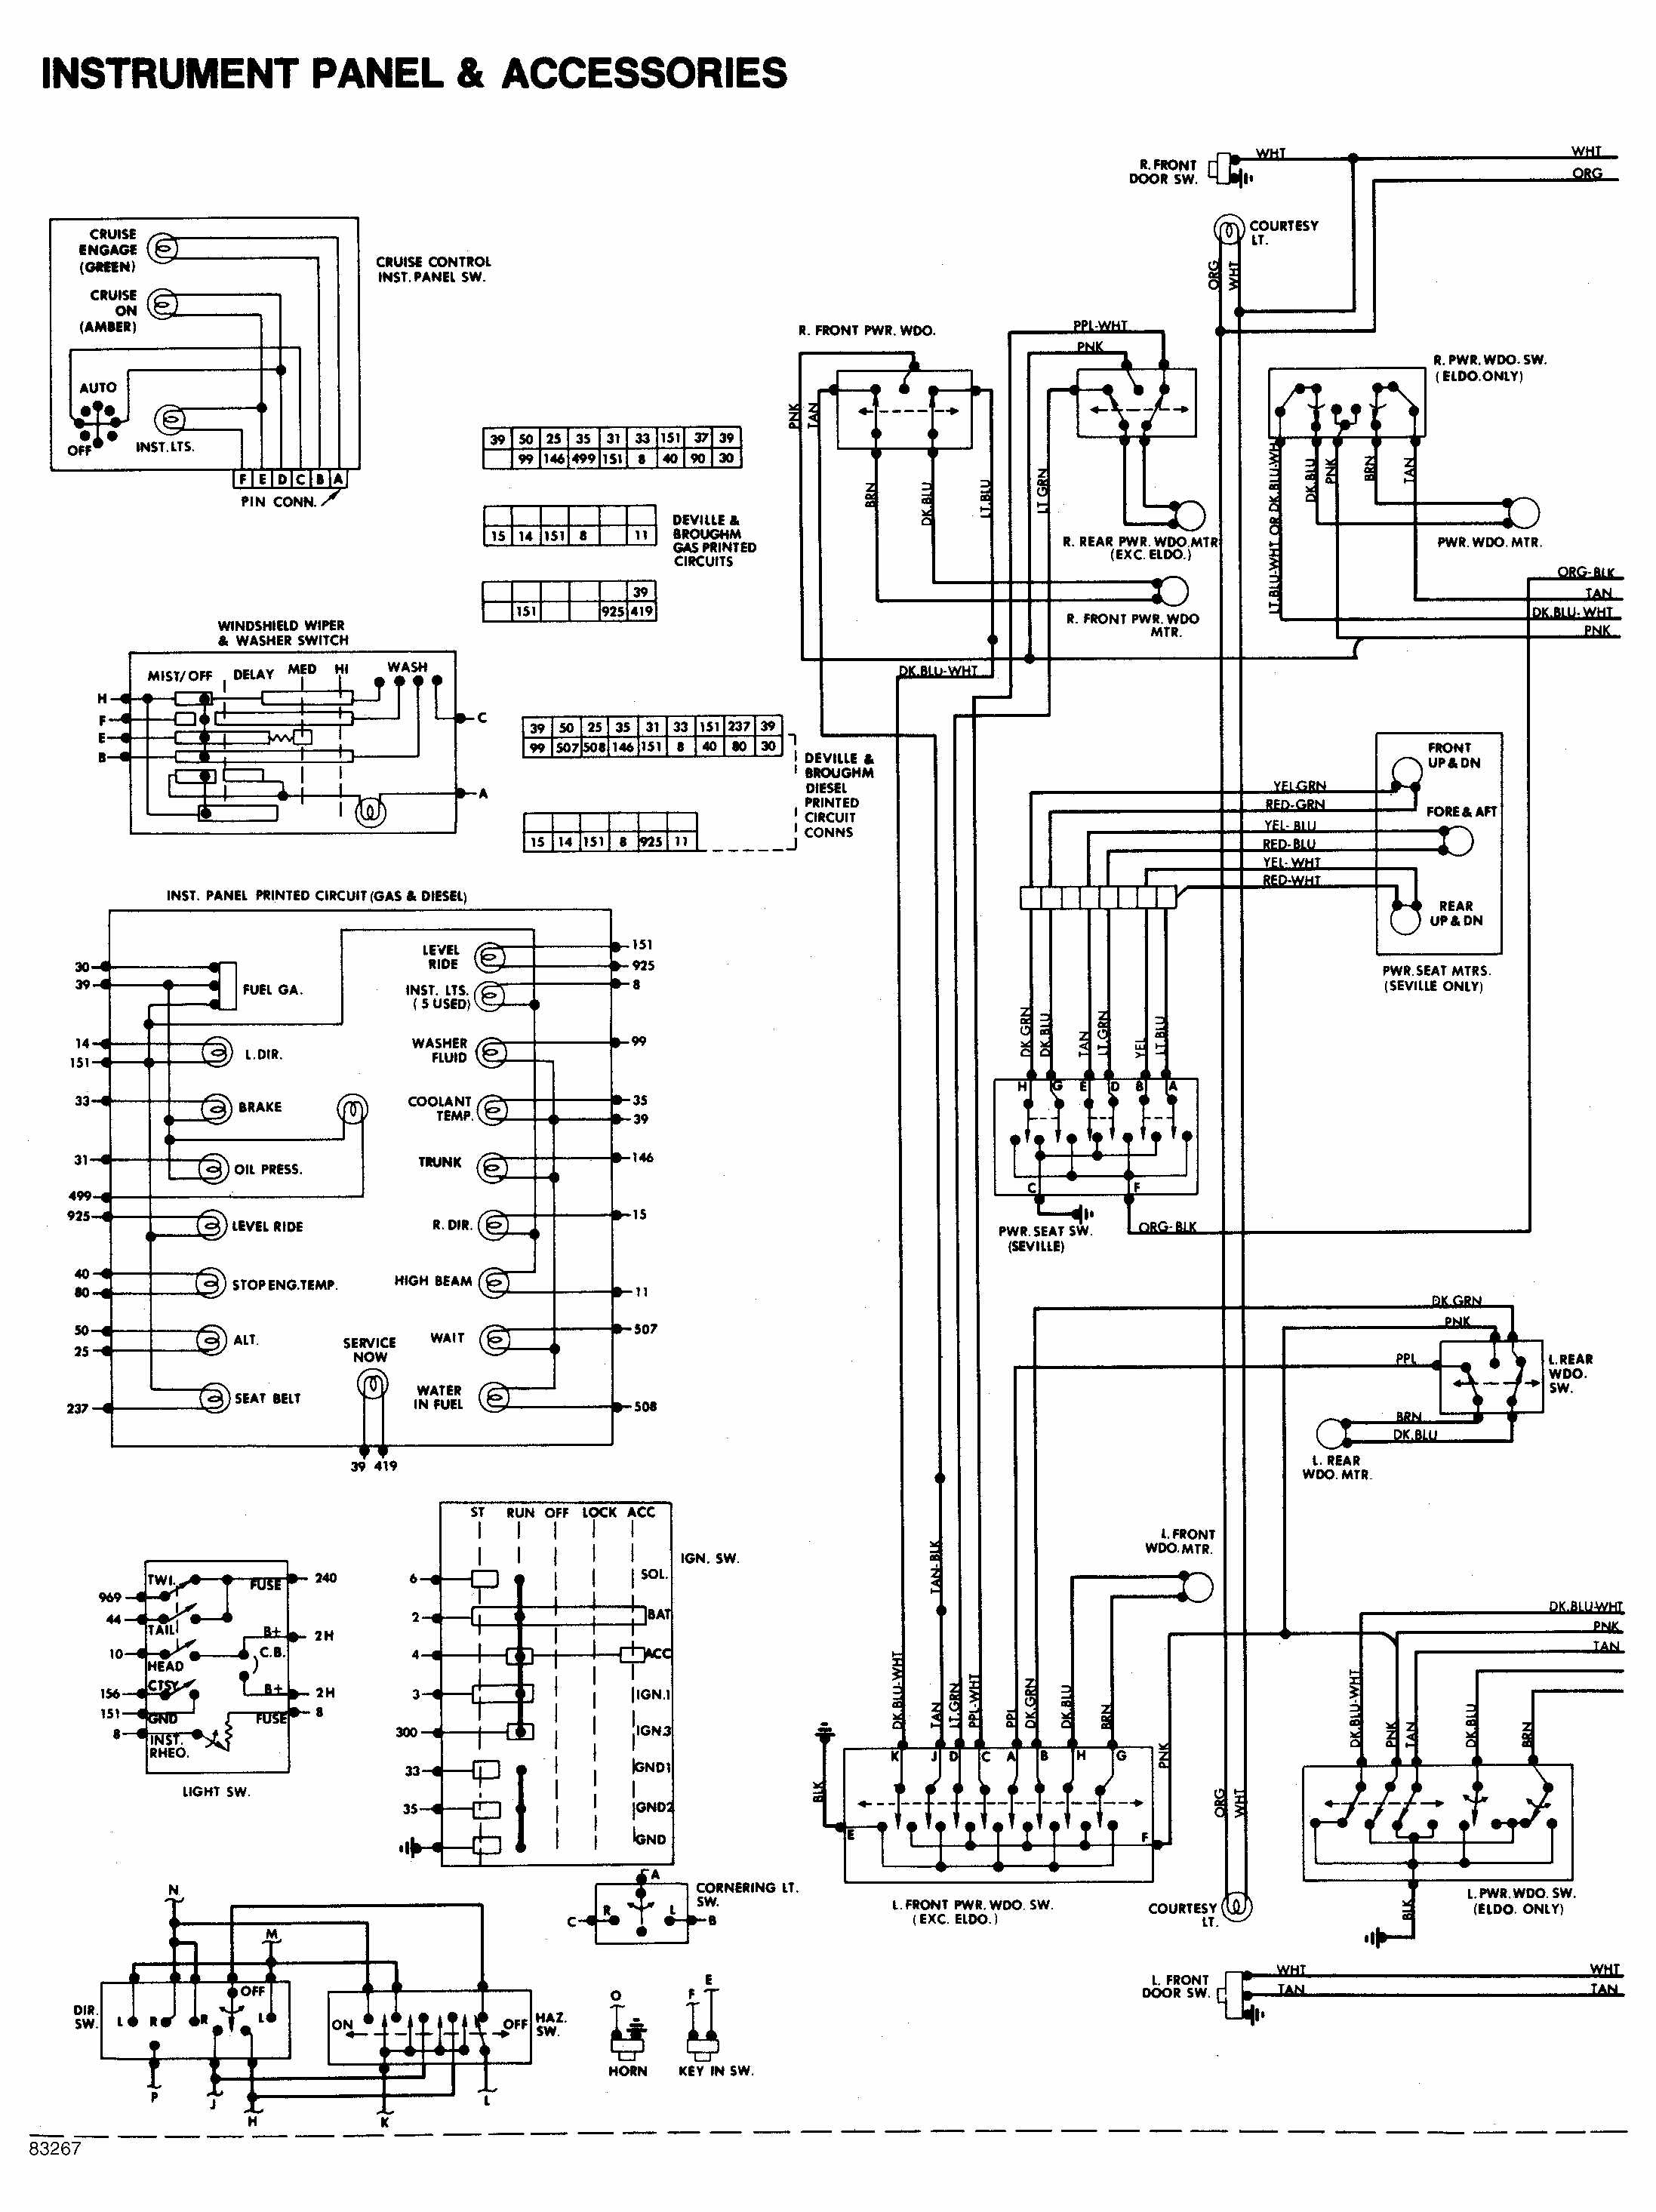 1976 Buick Electra Engine Diagram likewise Schematics wiring moreover 1996 Mazda 626 Engine Diagram further P 0996b43f8036fcd9 furthermore 1995 Buick Century Fuse Box Diagram. on 1995 buick park avenue wiring diagram